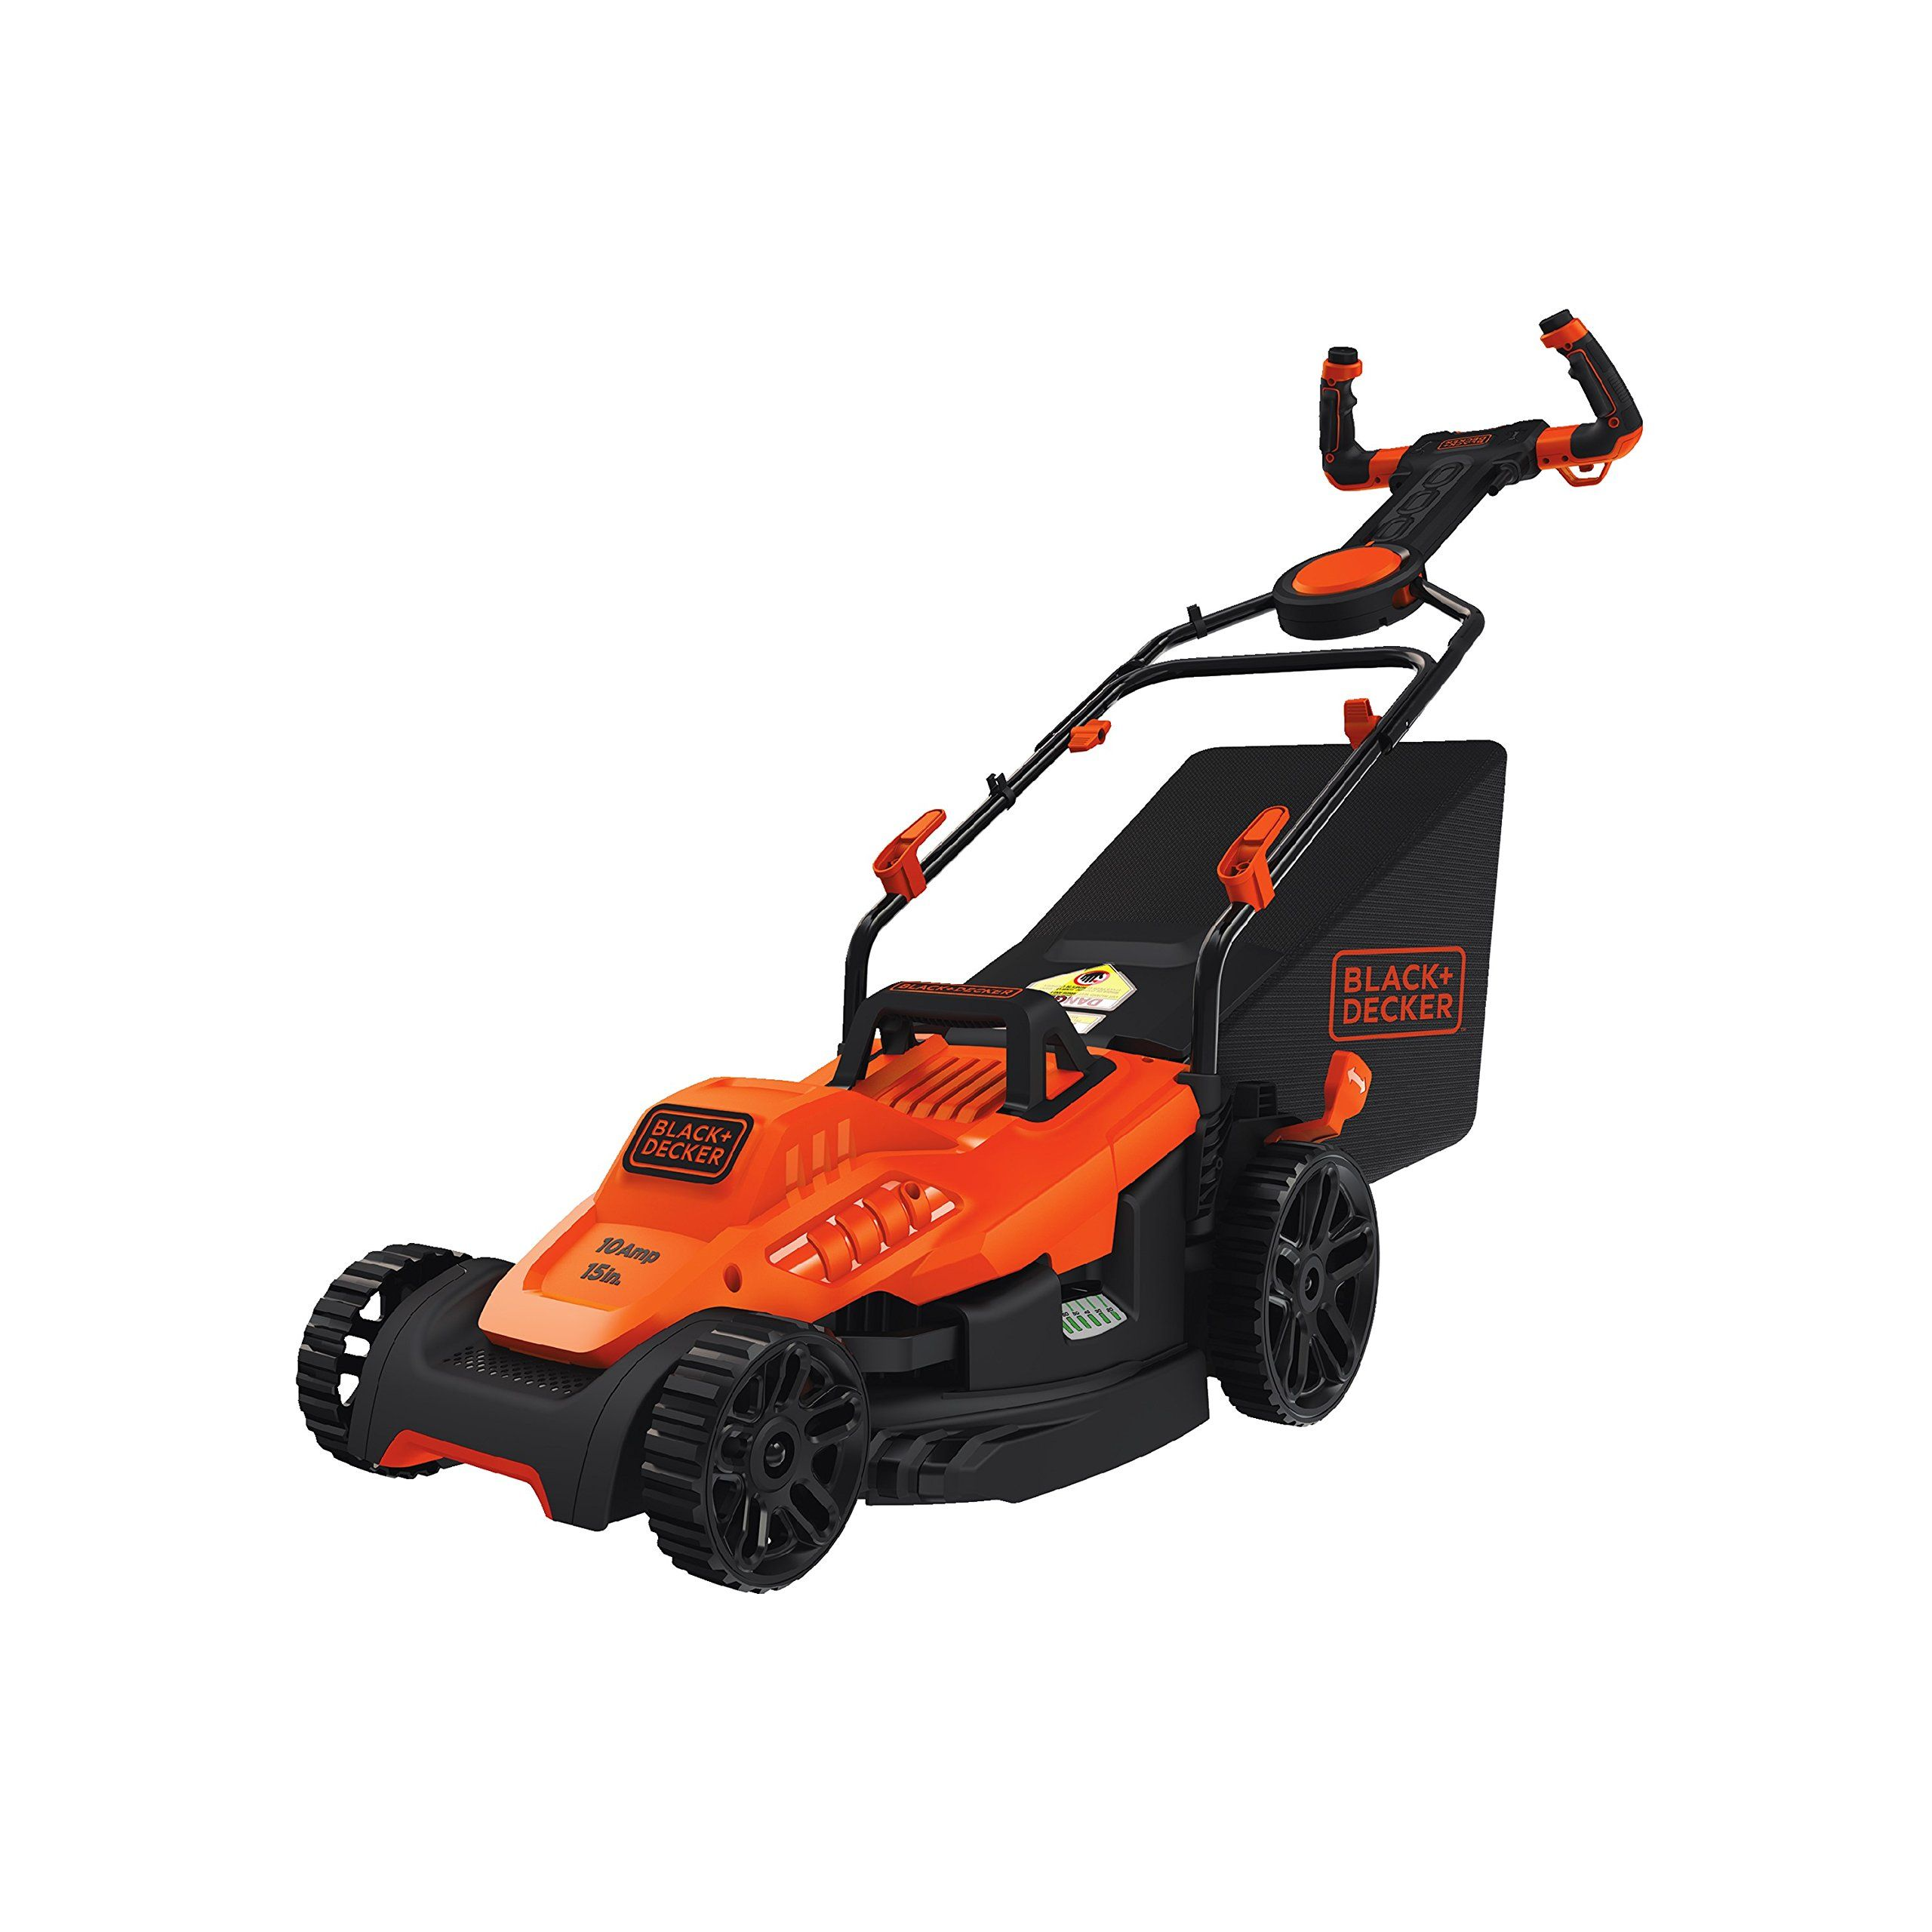 Black Decker Bemw472es Electric Mower 15 Lawn Pivot Control Handle Click Image For More Details It Is An In 2020 Best Lawn Mower Cordless Lawn Mower Electric Mower